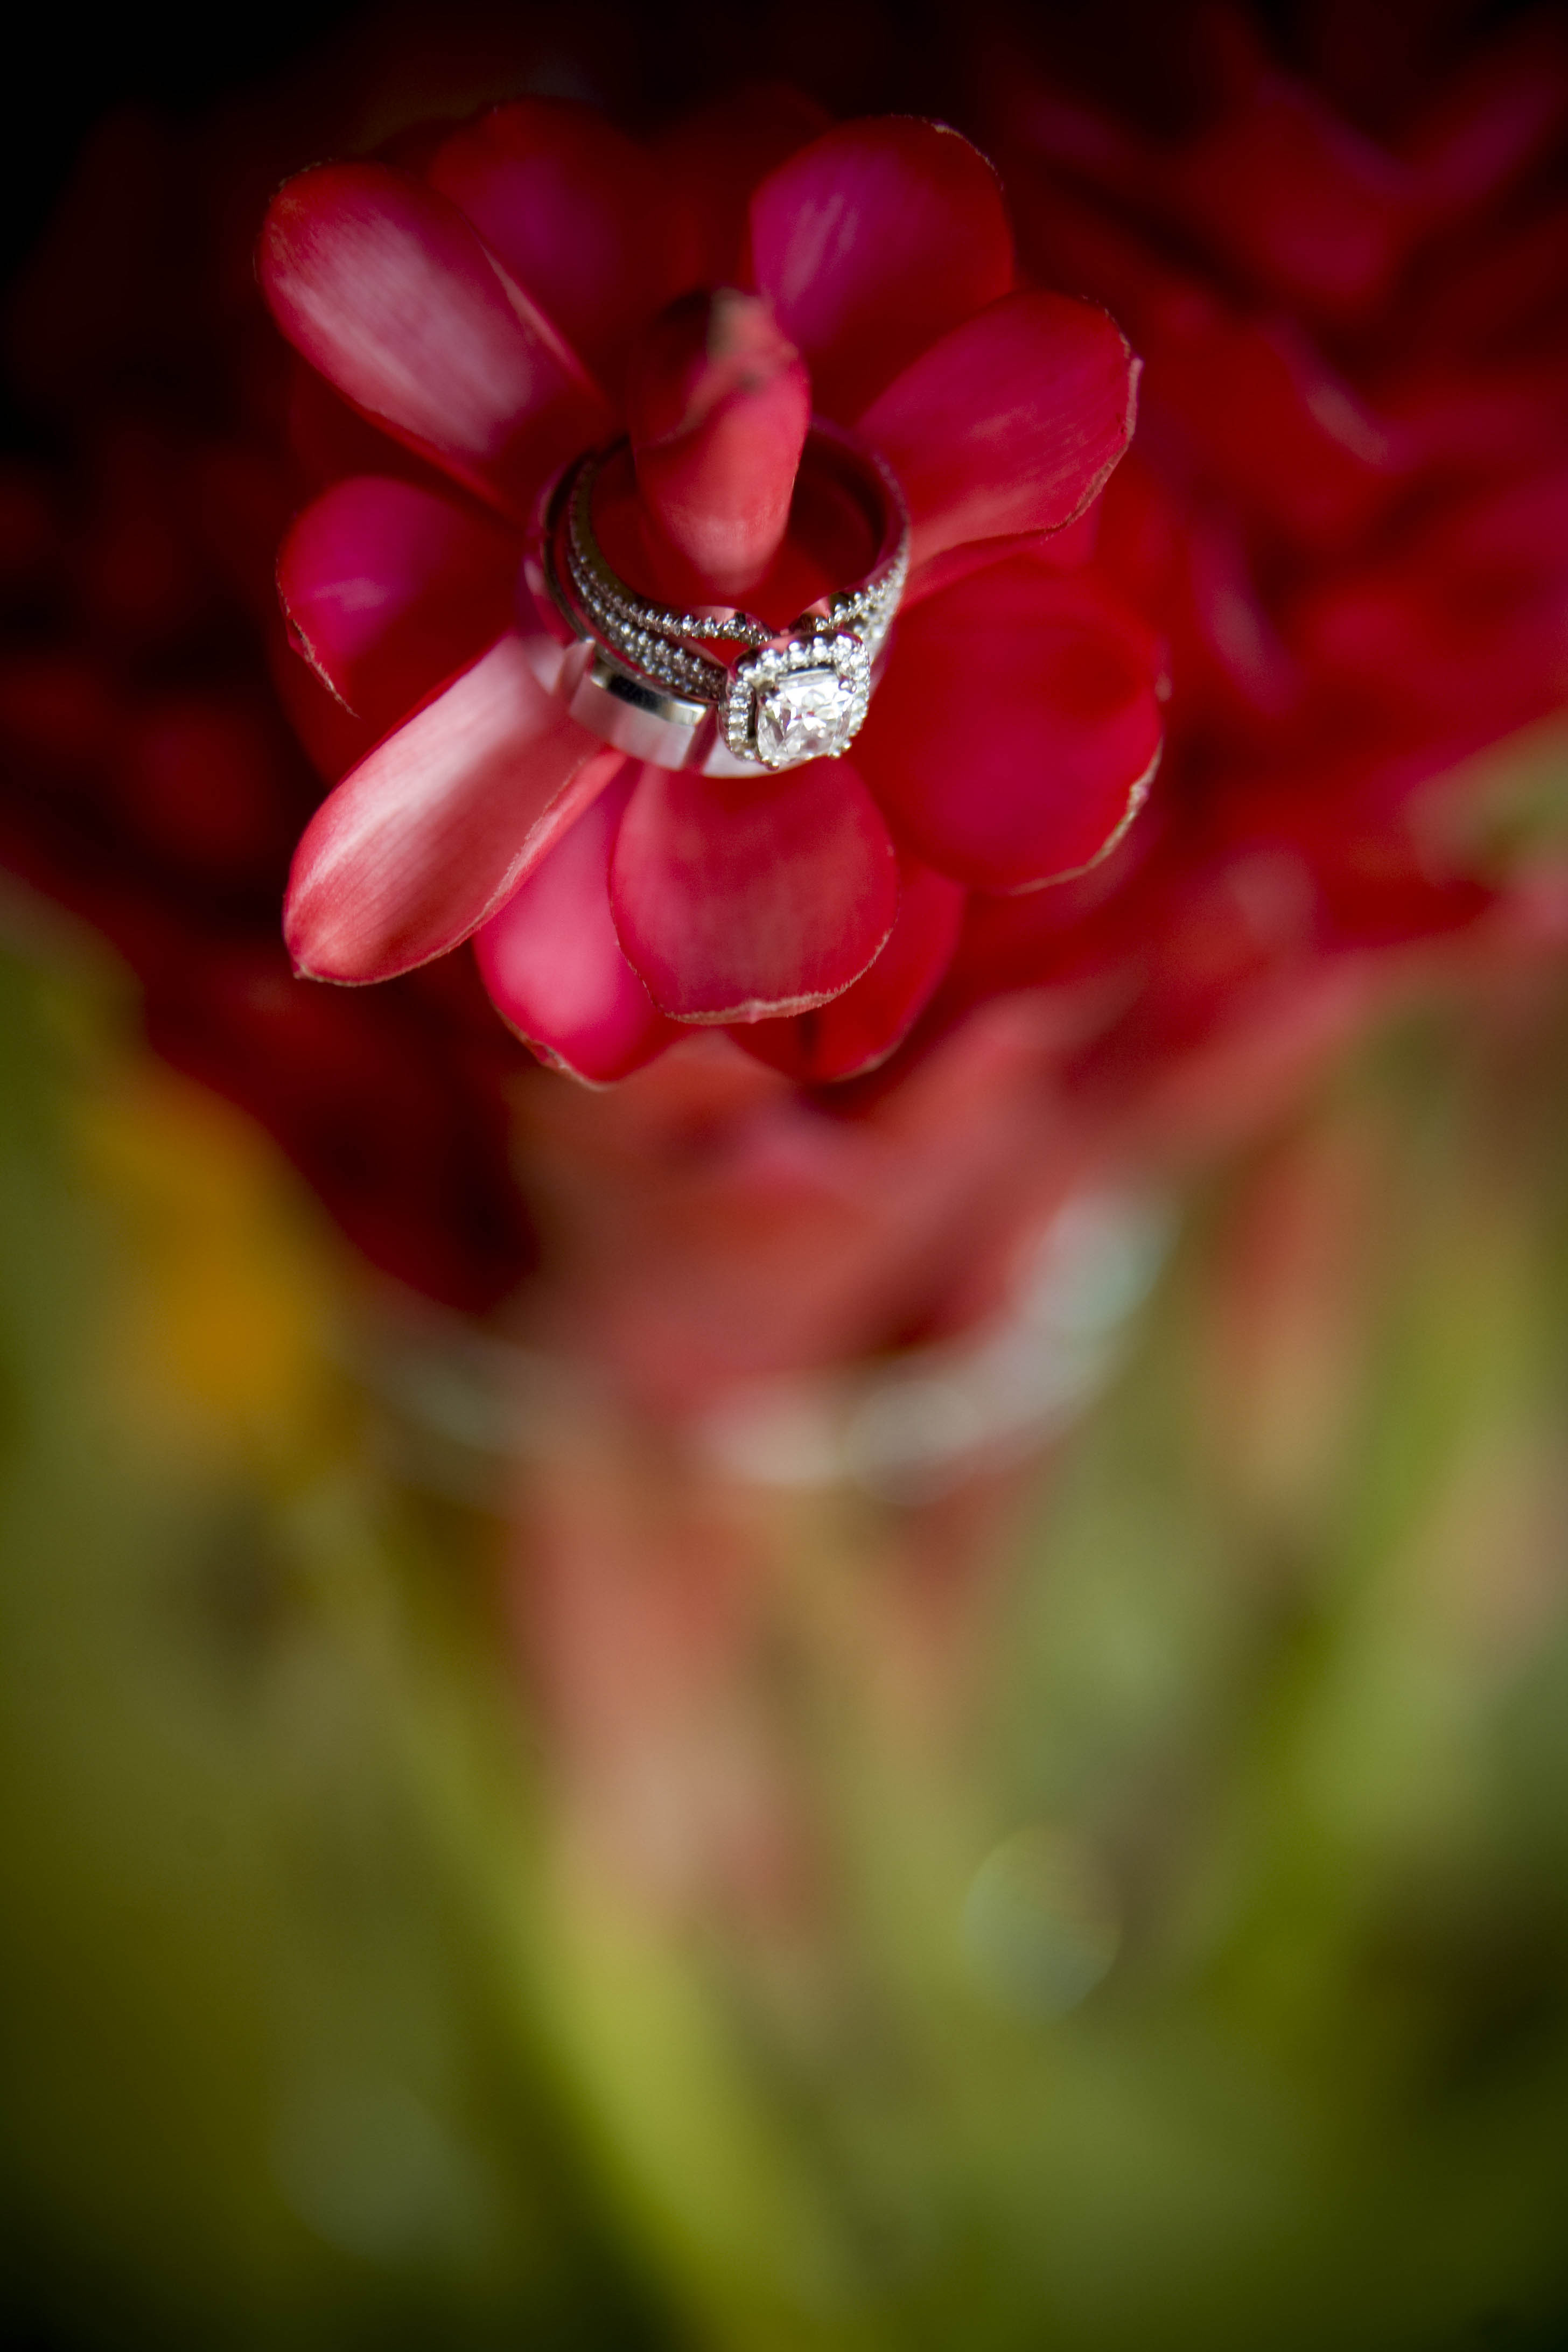 red, green, Ring, Details, Fino photography